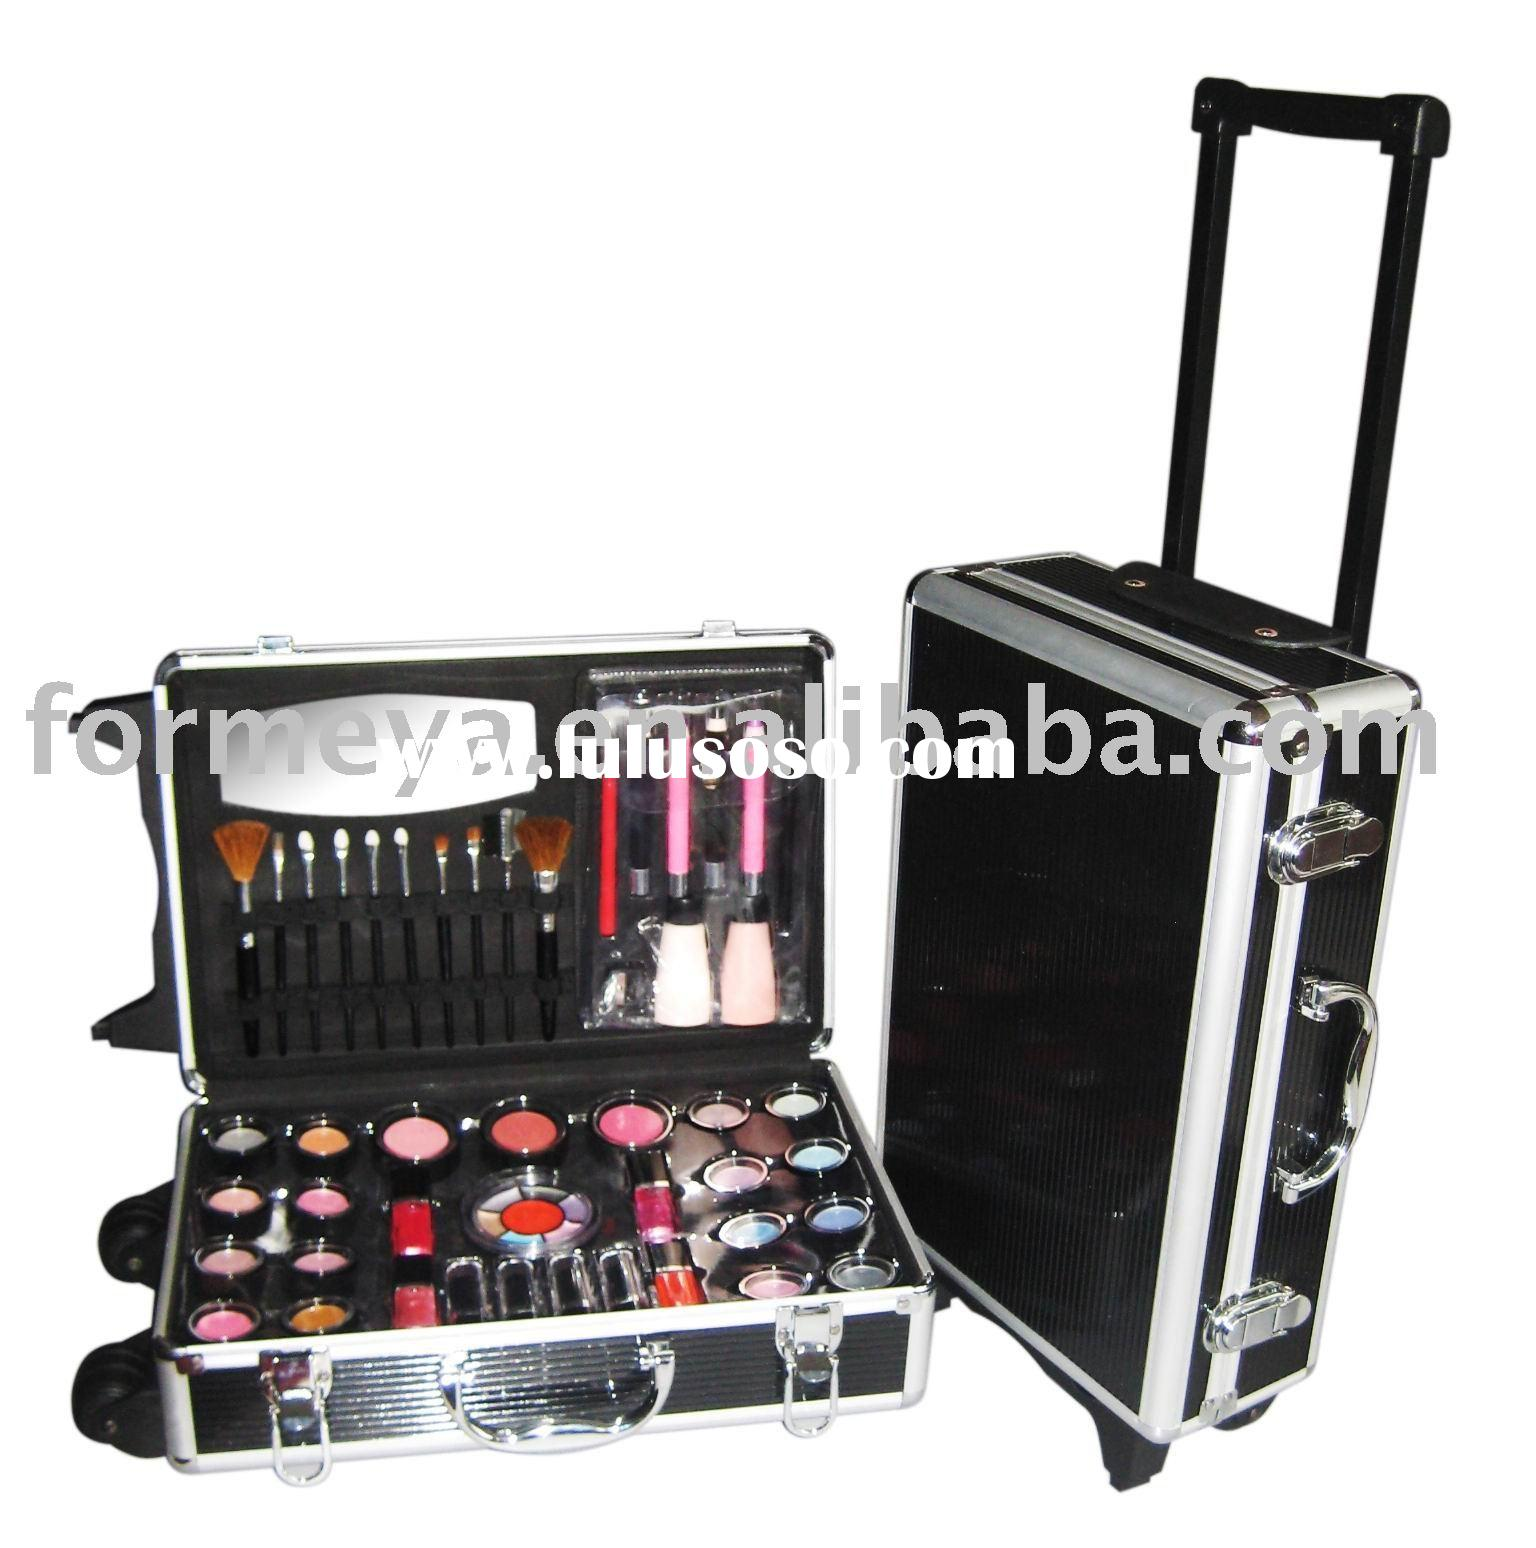 professional aluminum cosmetic trolley cases_cosmetic trolley cases with color cosmetic products